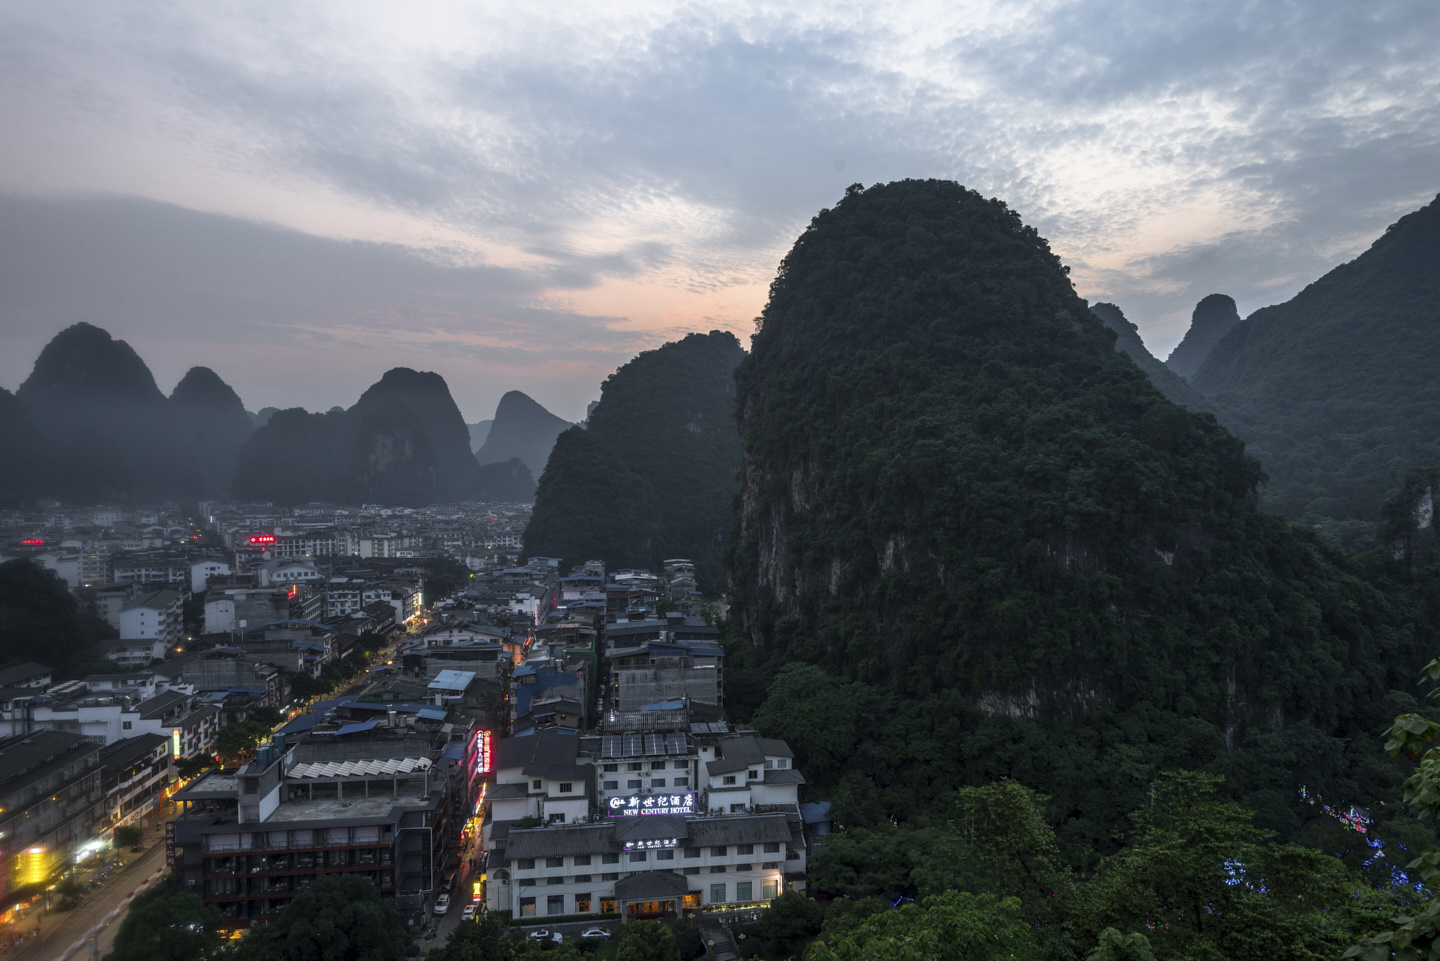 The sleepy town of Yangshuo wakes at dawn, blue and pink in the twilight.